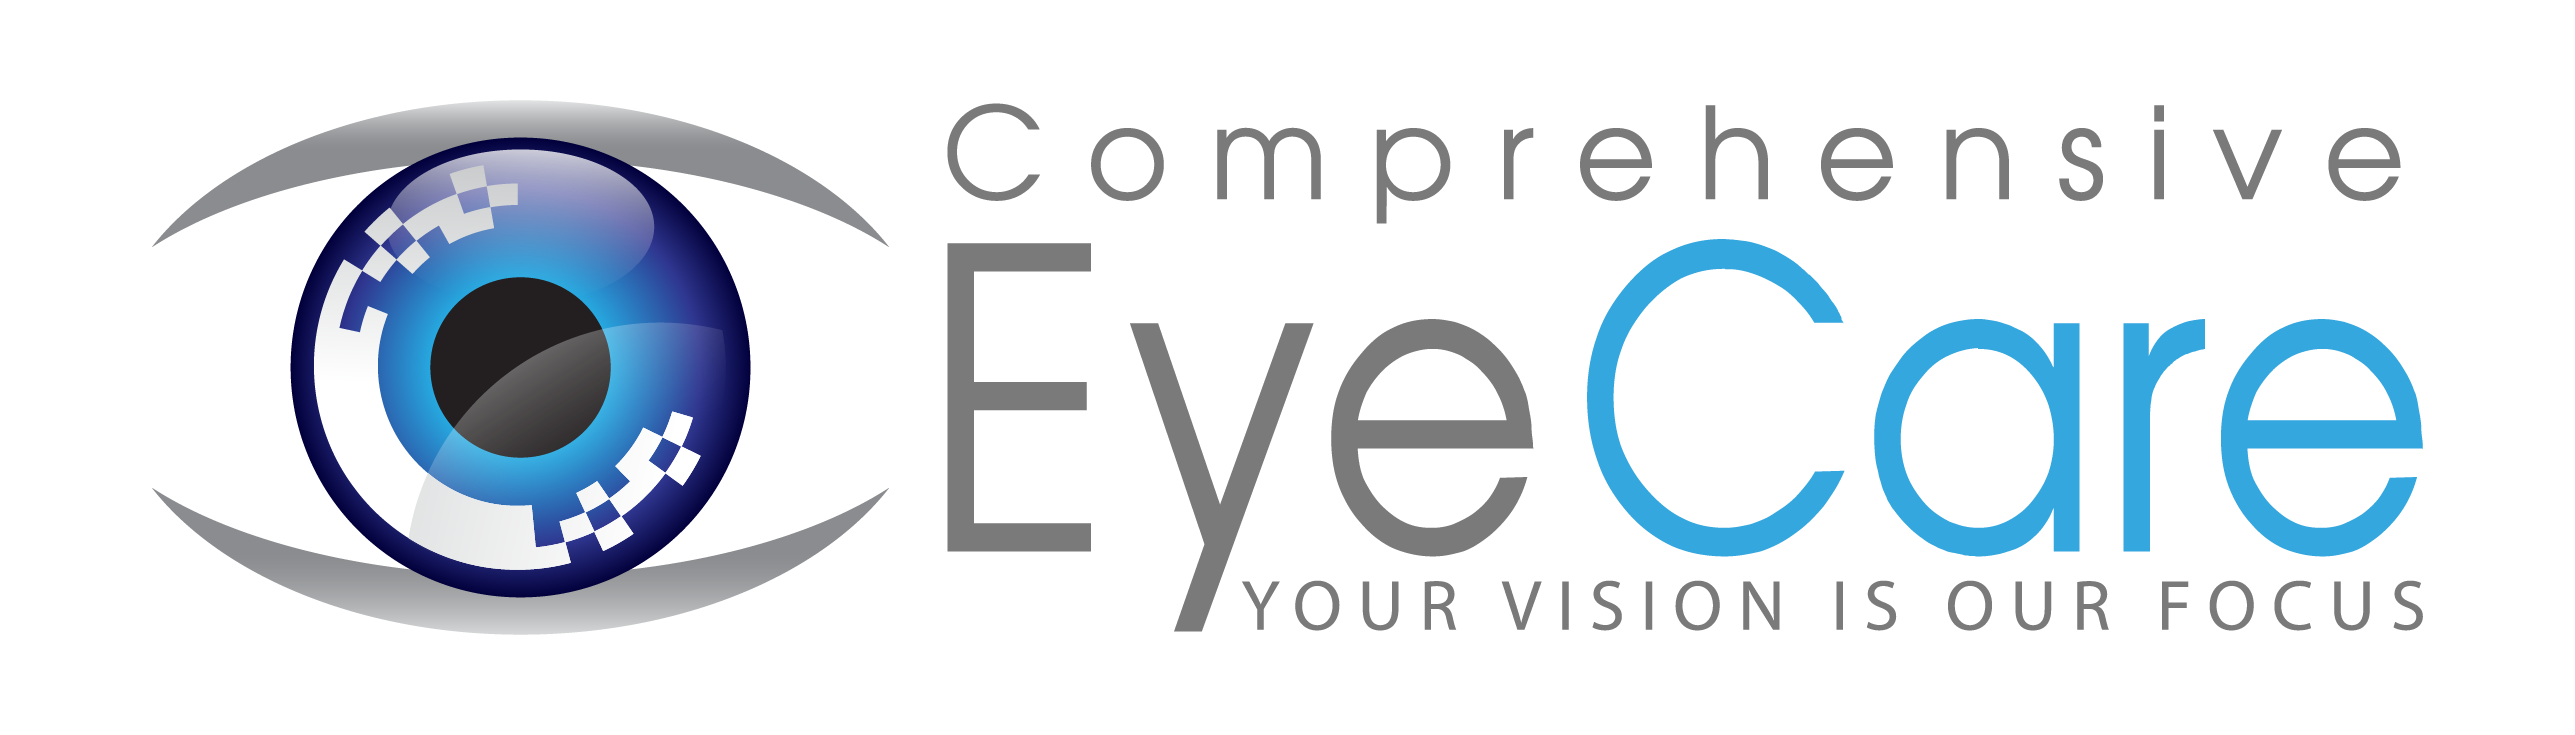 Comprehensive Eyecare of Virginia, LLC